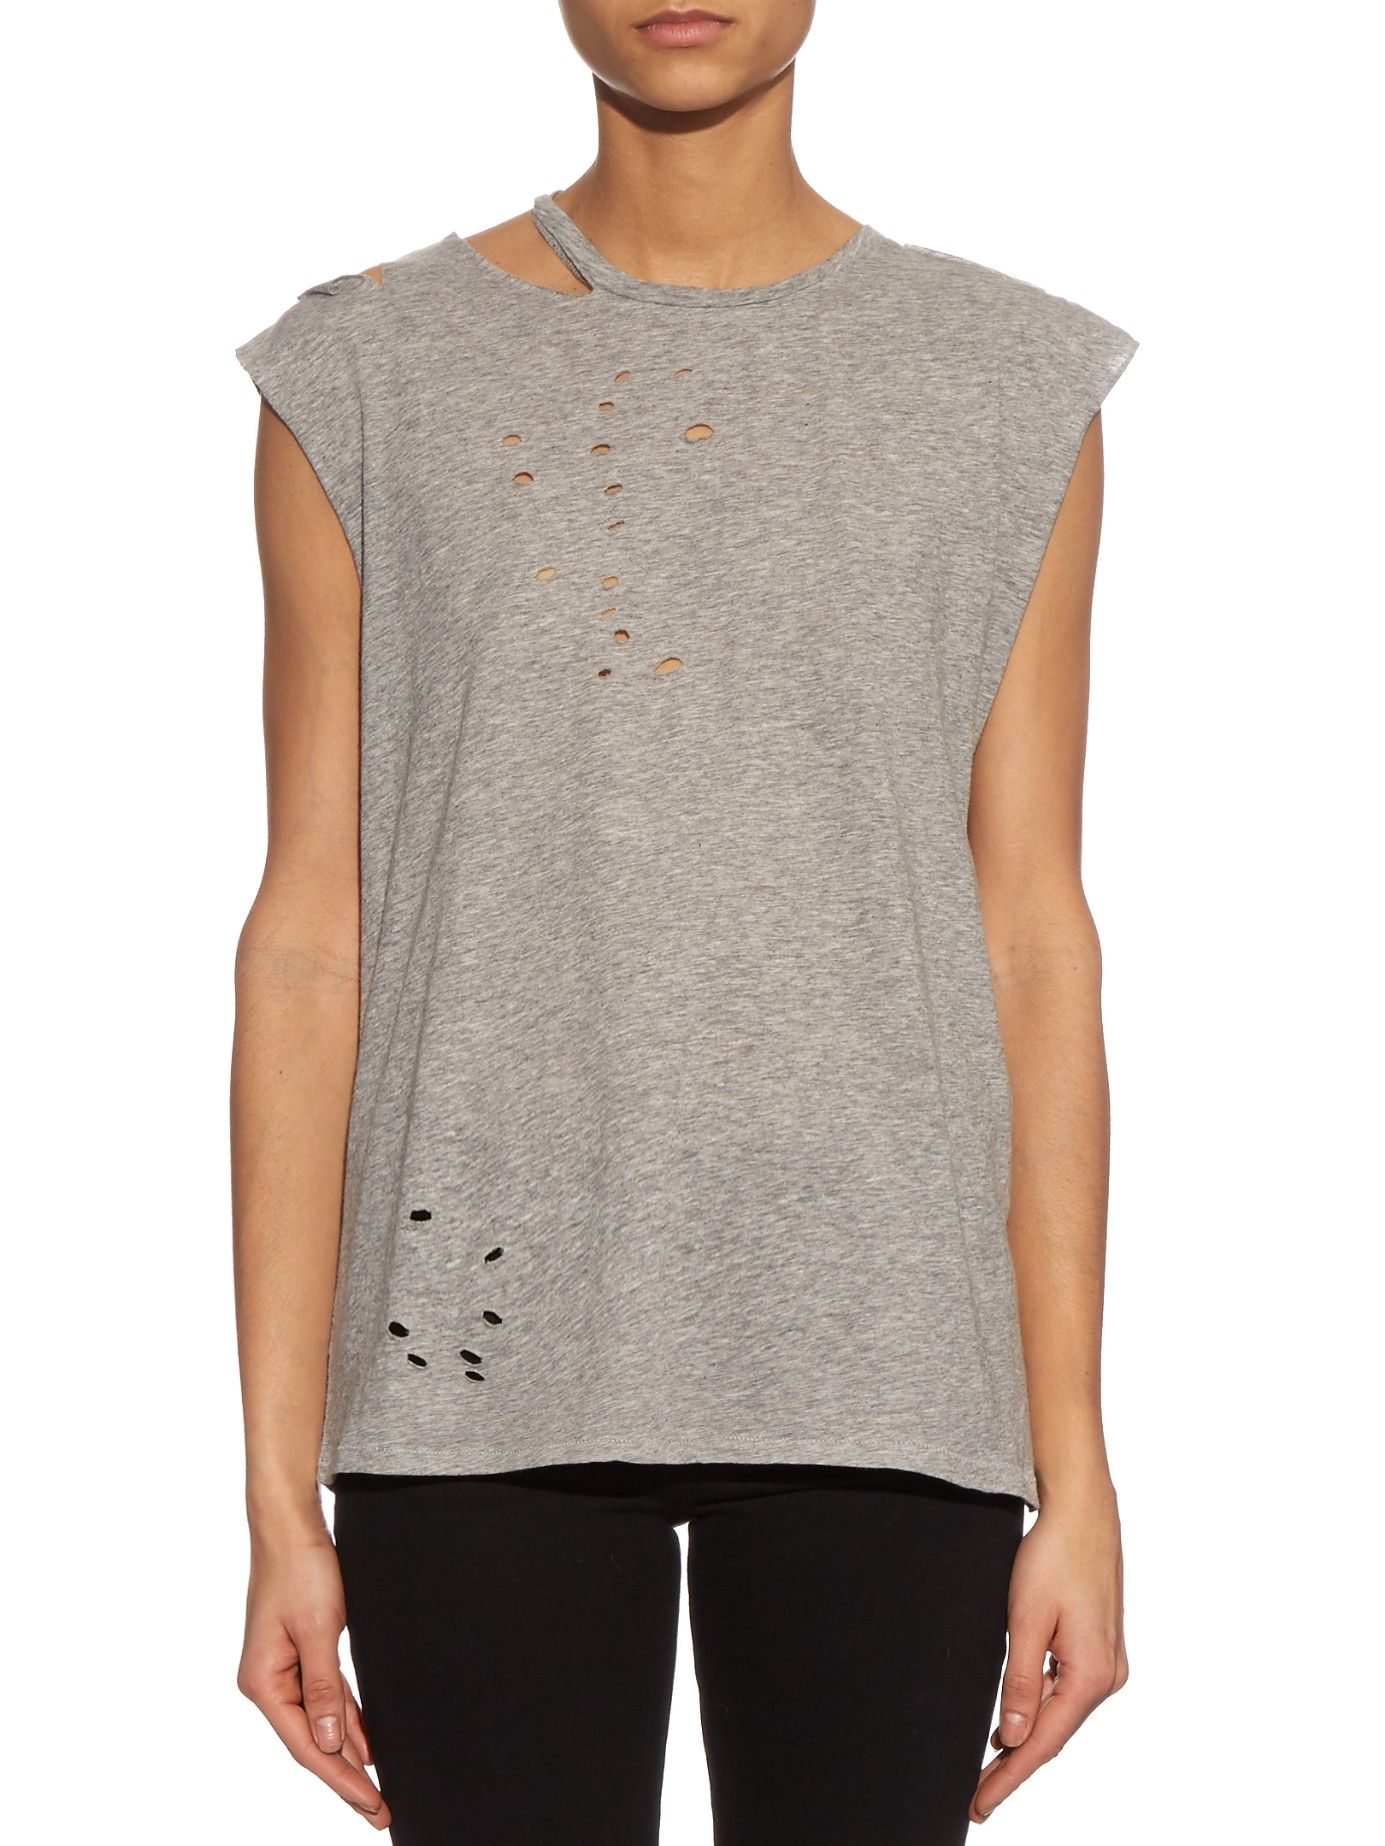 Distressed cotton and cashmere-blend tank top  | R13 | MATCHESFASHION.COM